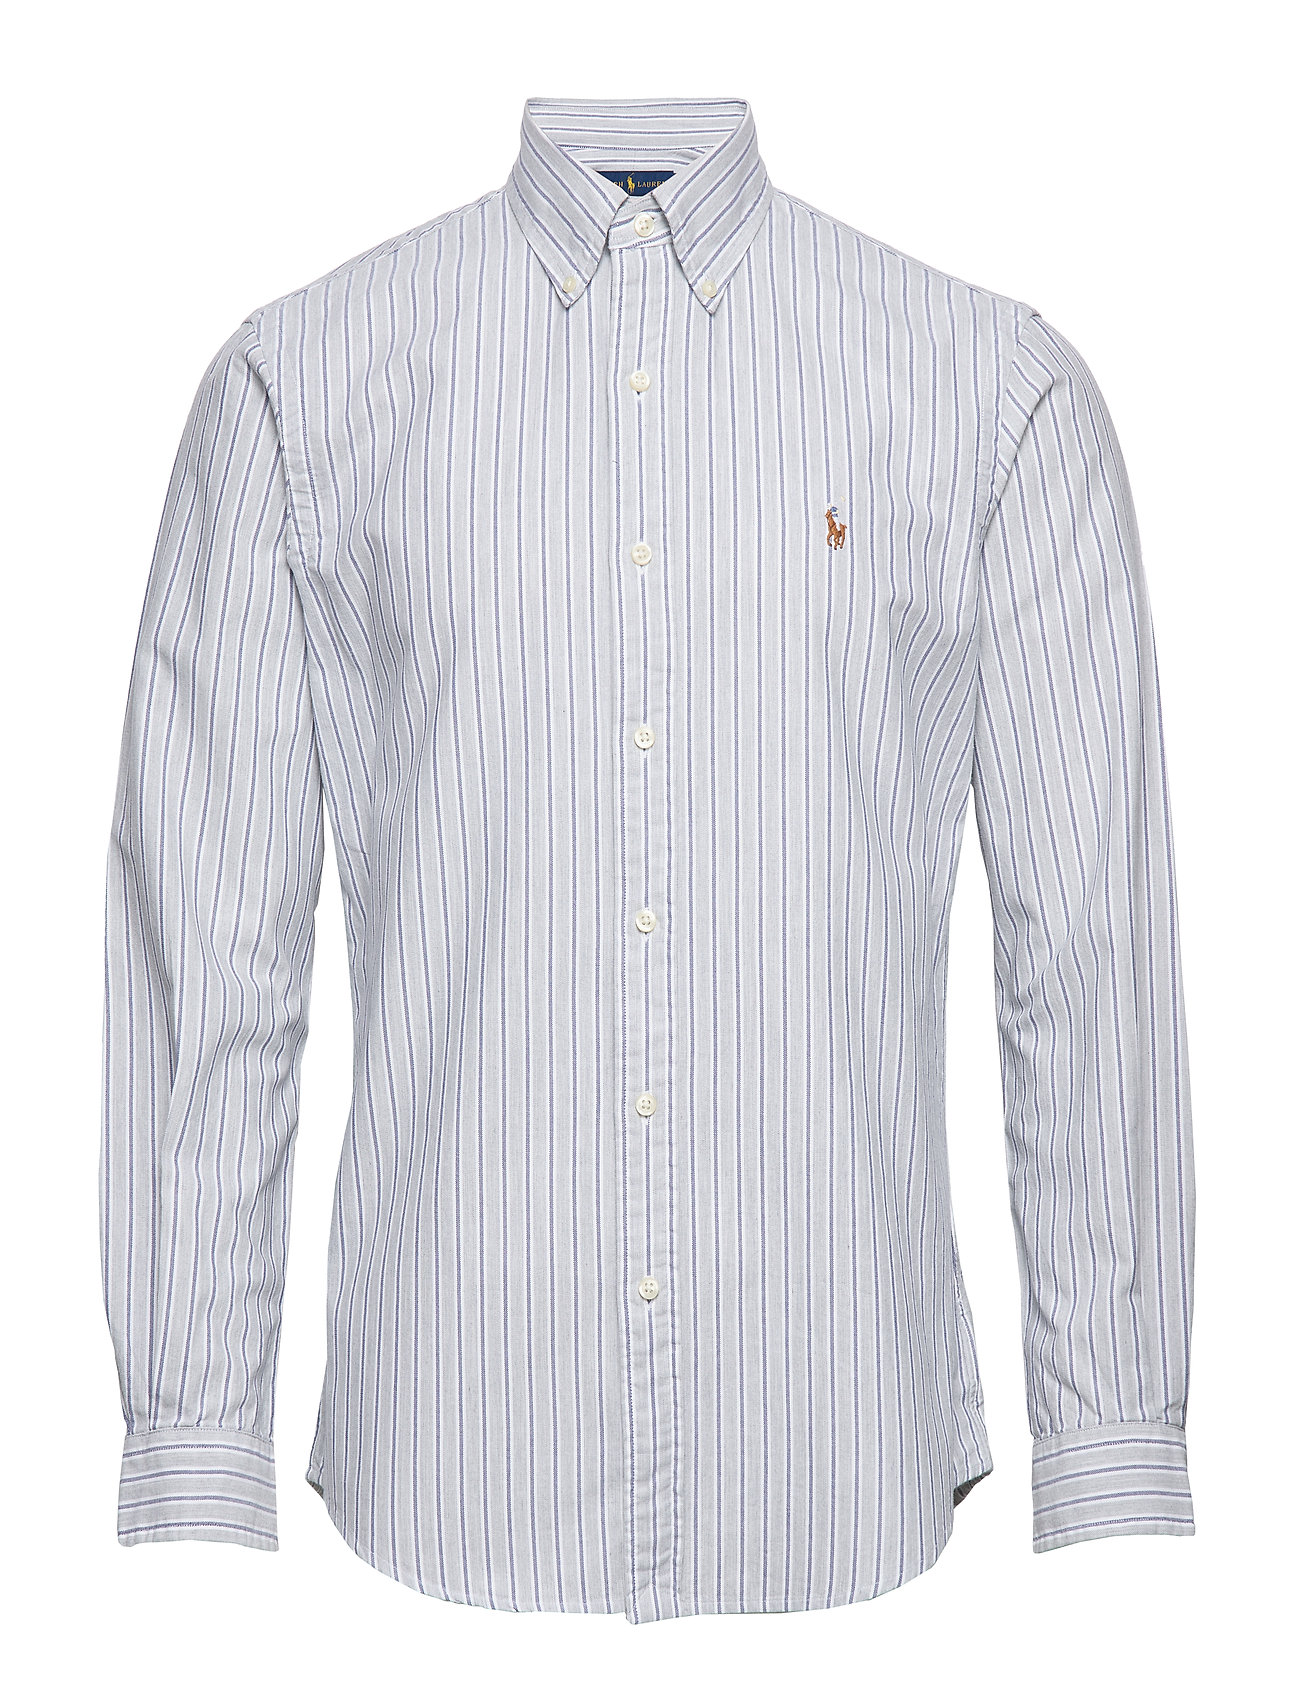 Polo Ralph Lauren Custom Fit Striped Shirt - 4331B HEATHER GRE